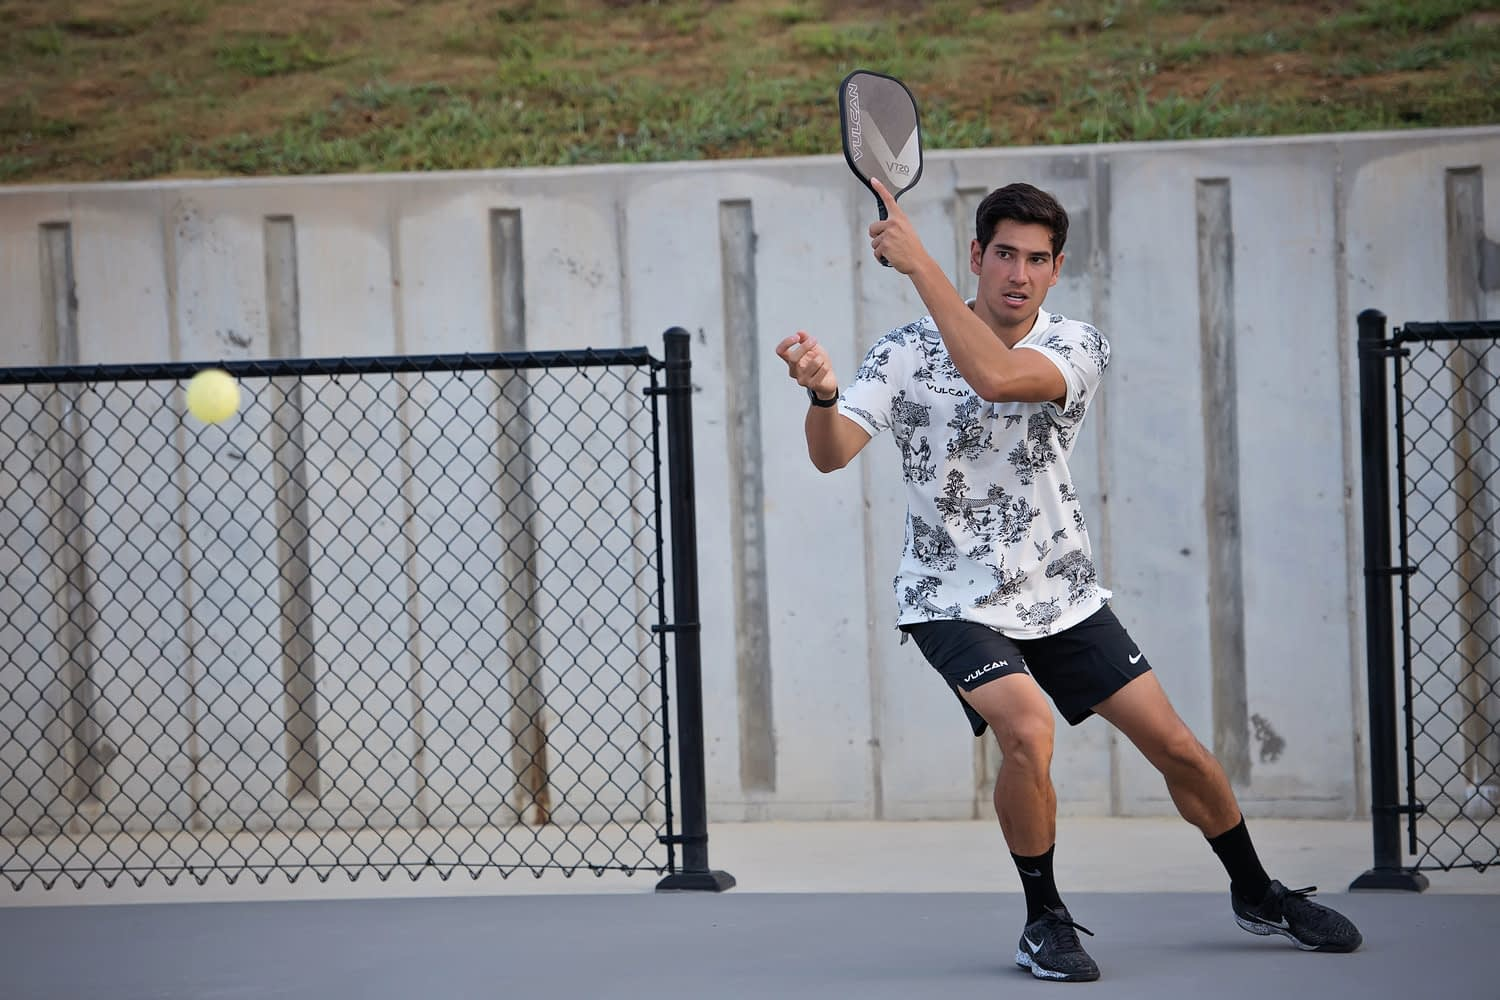 Tyler Loong on the Pickleball court.